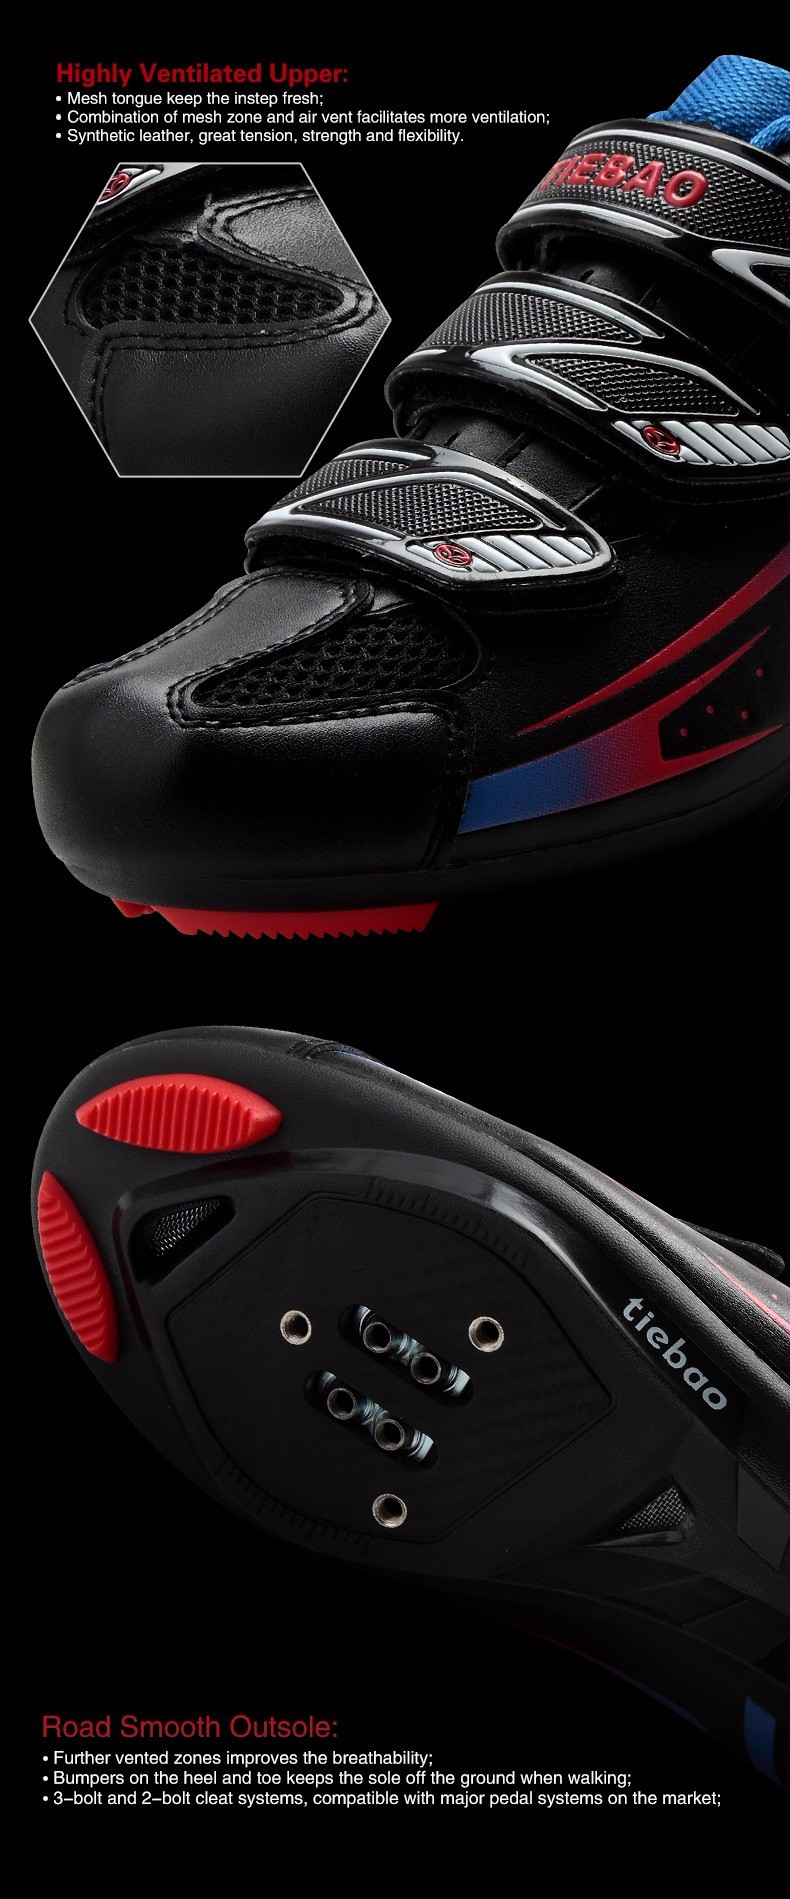 2016 HOT SALE PLAIN STYLE CYCLING ROAD SHOES WITH REASONABLE PRICE